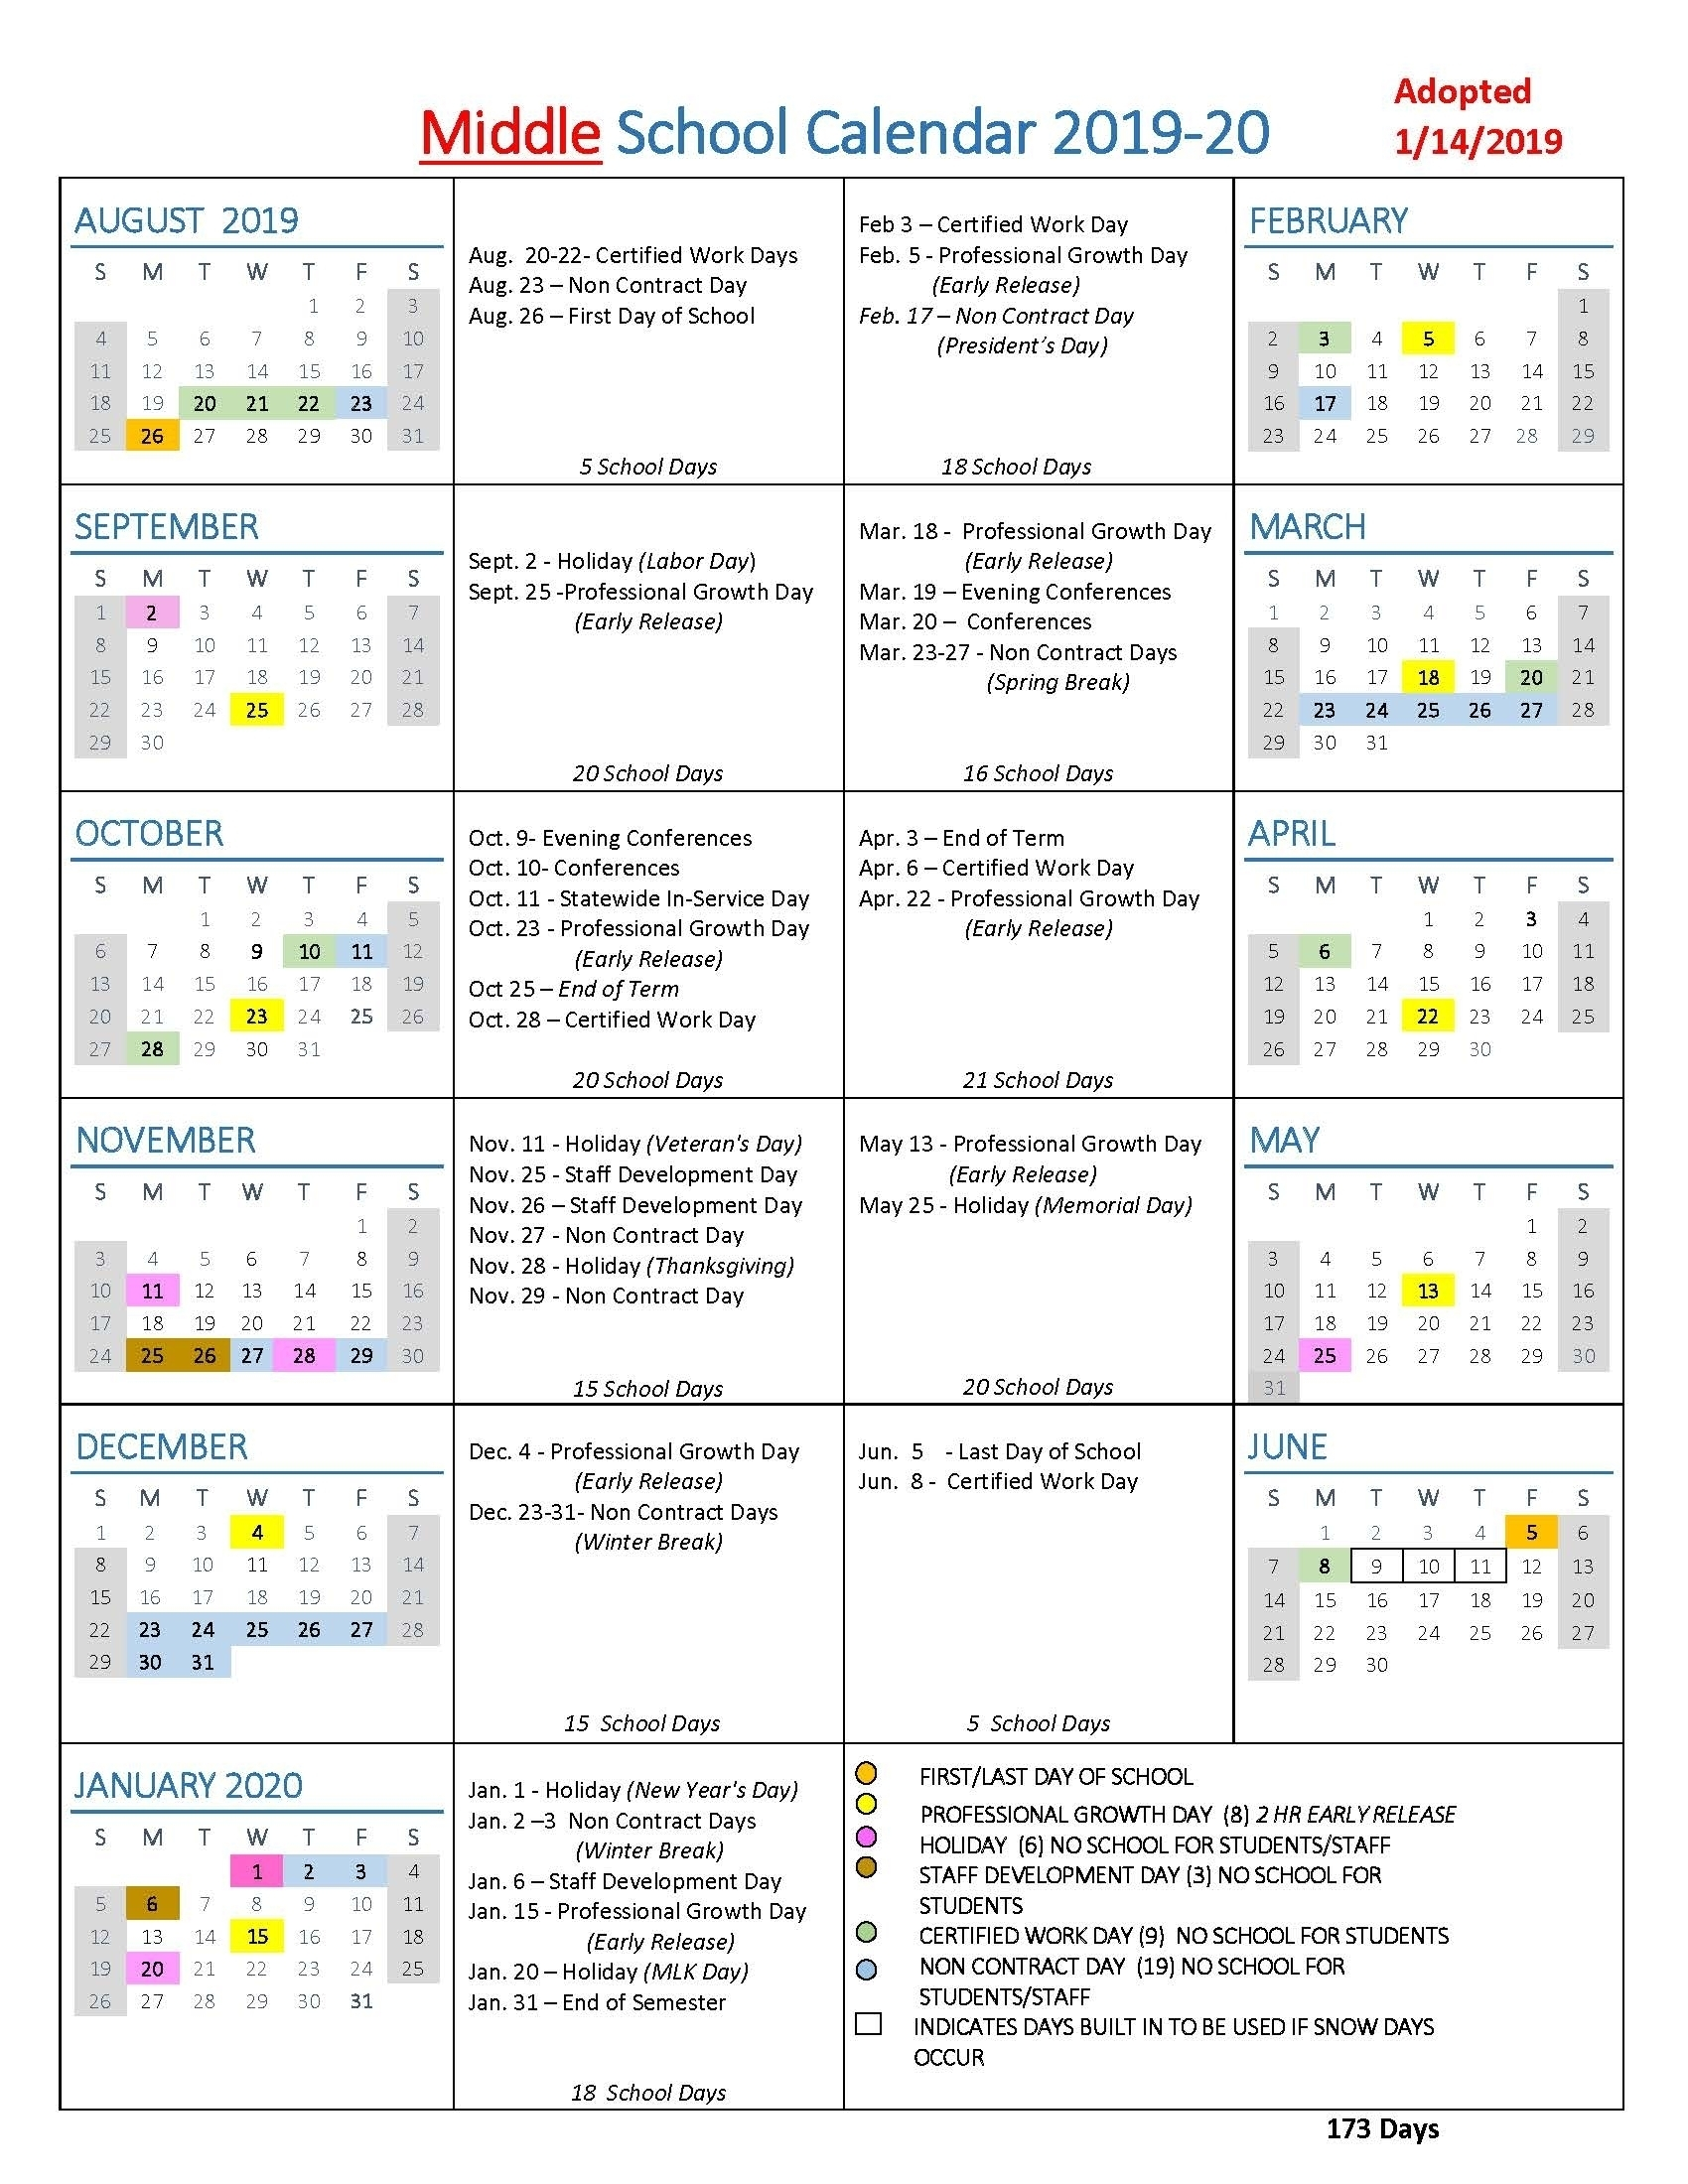 Calendar With All The Special Days In 2020 - Calendar regarding Yearly Calendar Of Special Days 2020